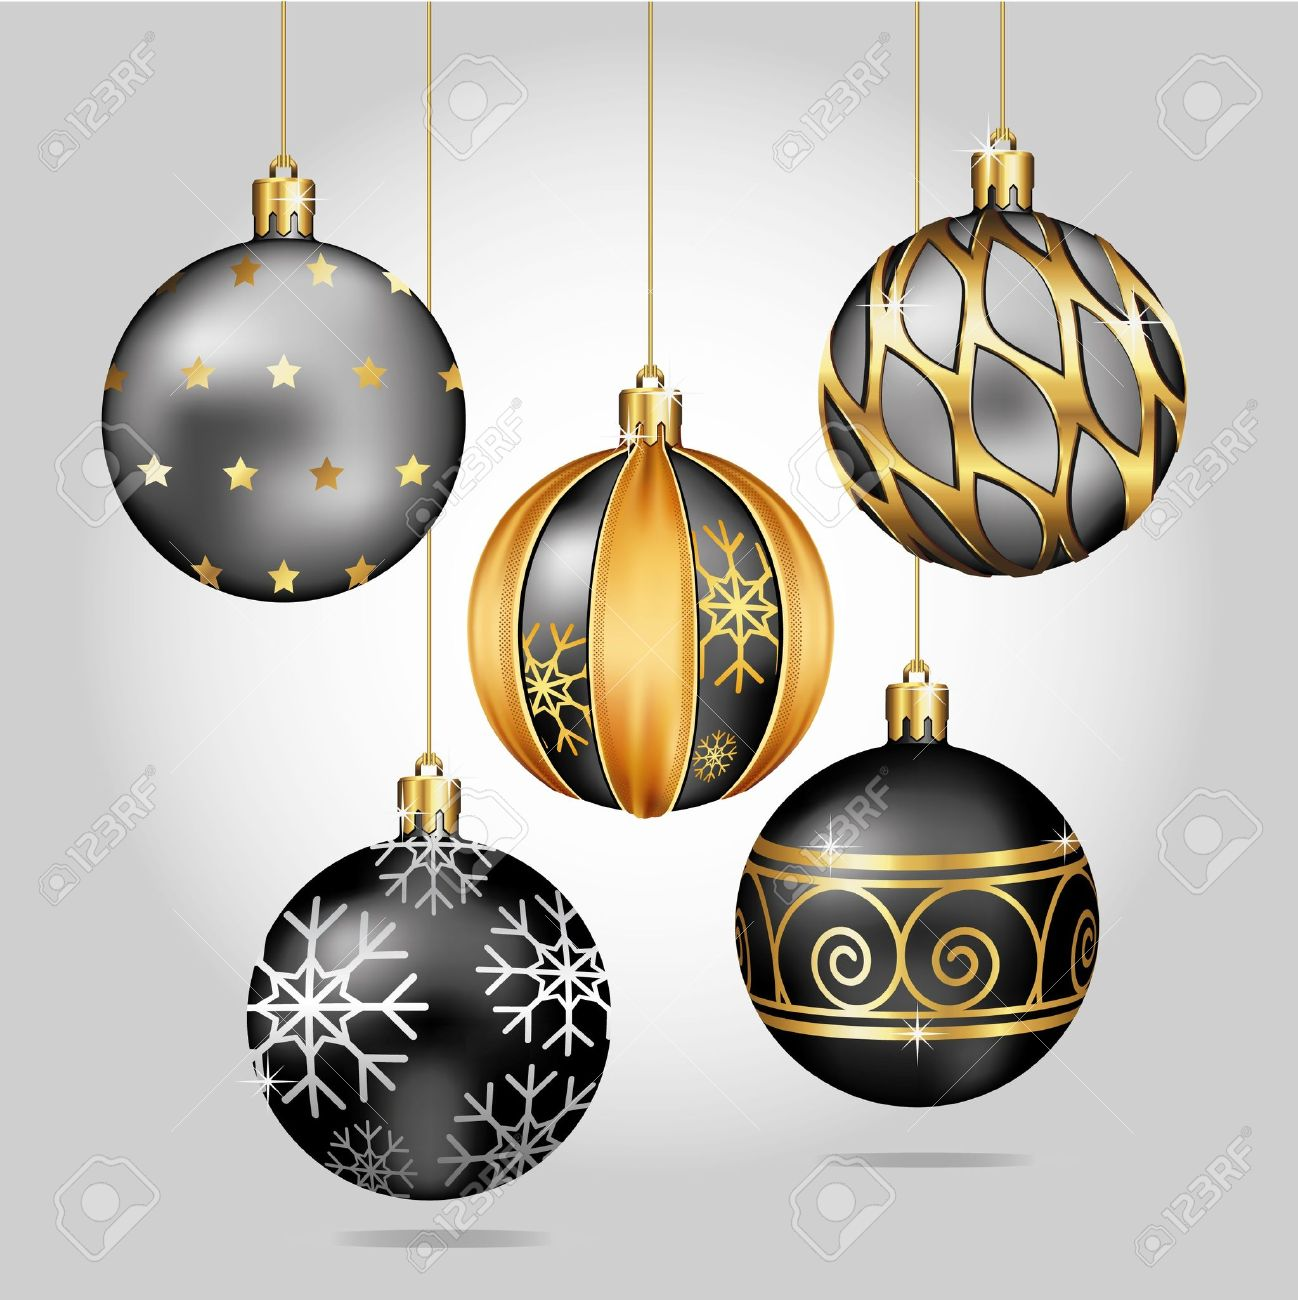 Black and gold christmas decorations - Christmas Ornaments Hanging On Gold Thread Stock Vector 11375569